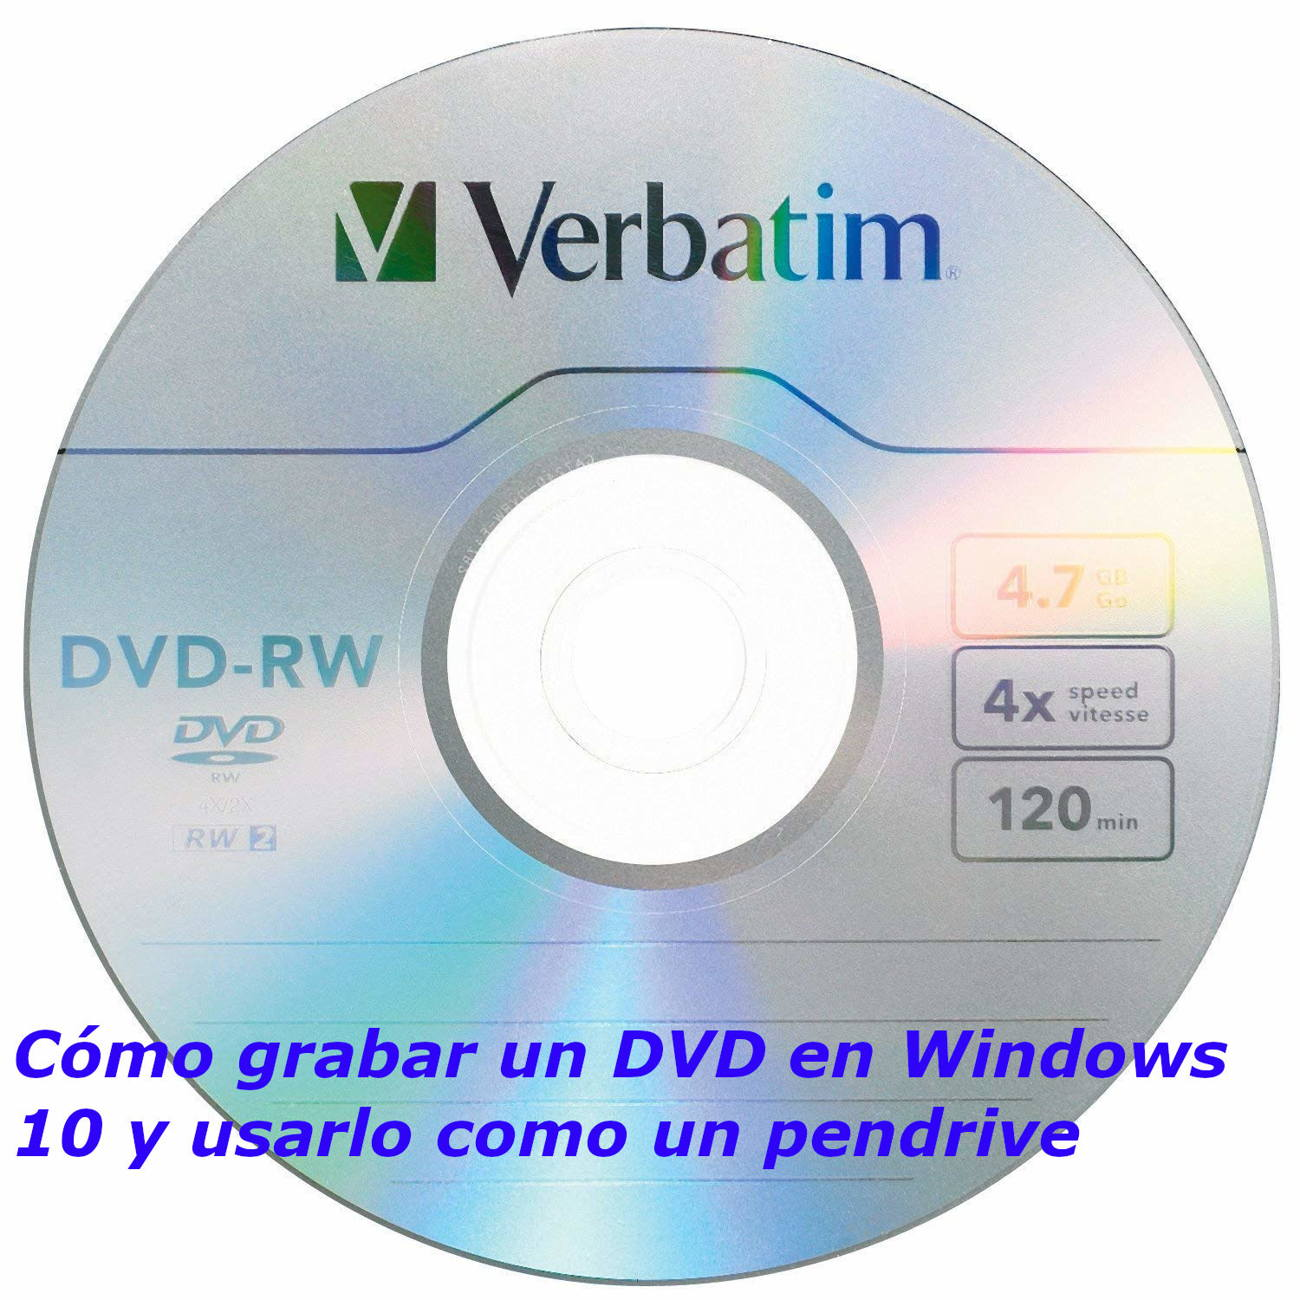 Como grabar un DVD en Windows 10 y usarlo como un pendrive